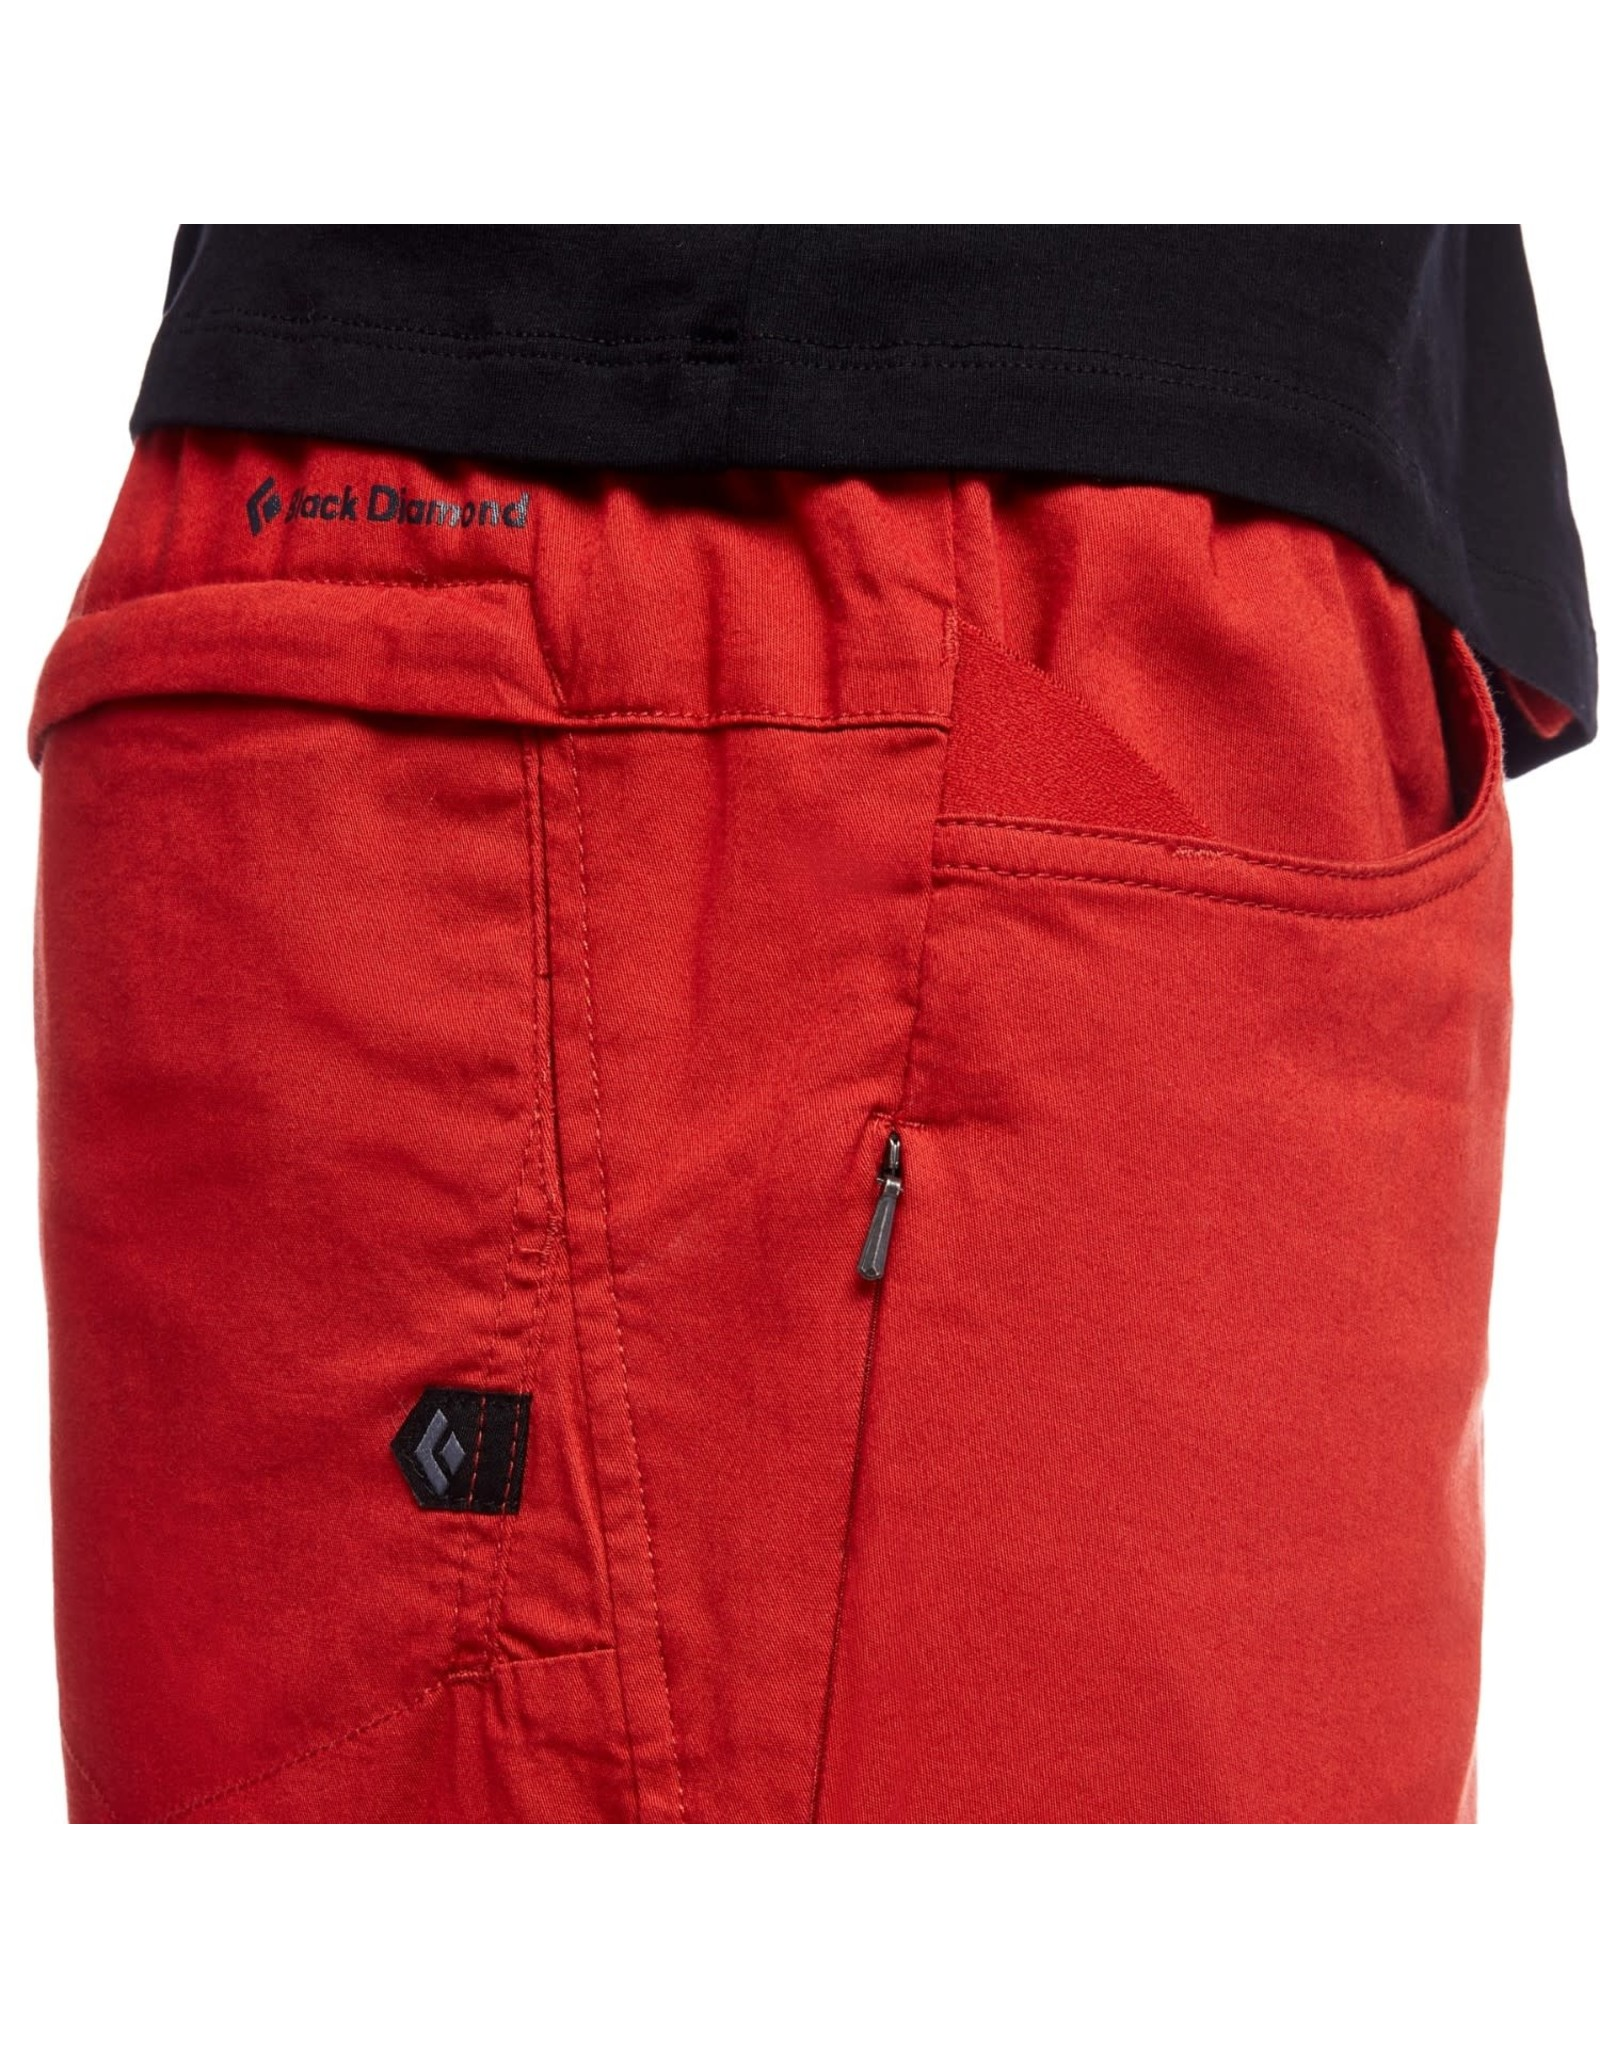 Black Diamond Black Diamond Notion Shorts - Men